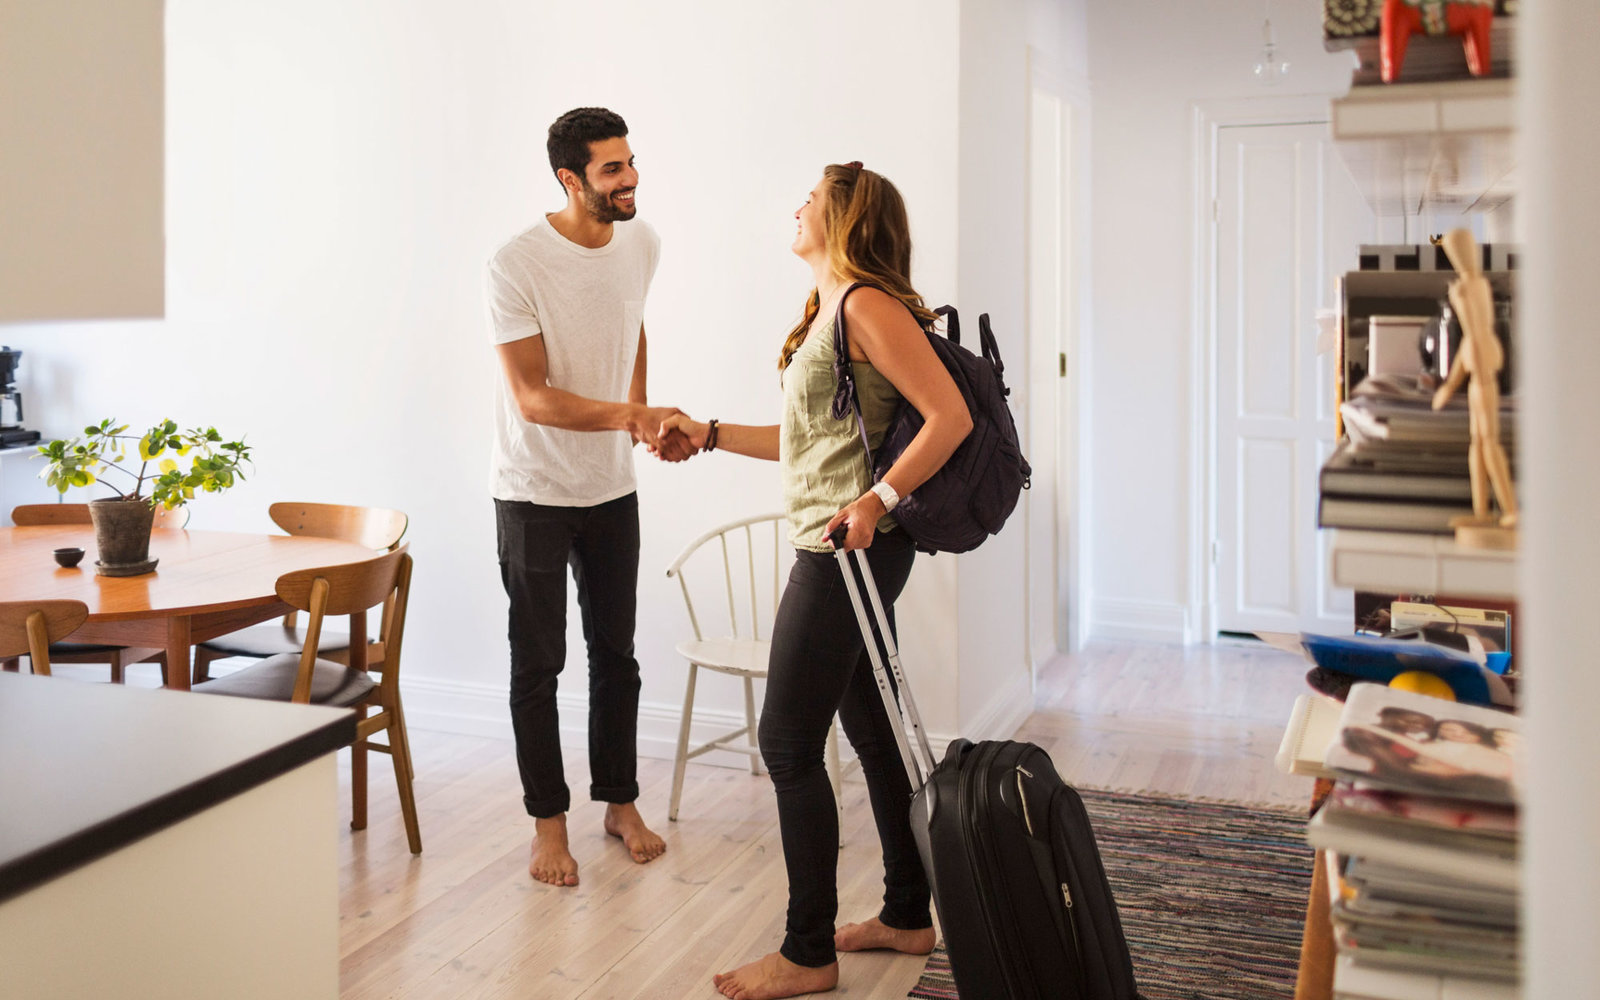 A female guest with a wheely backpack being welcomed by her male host in a light, airy kitchen and diner. They are shaking hands and smiling